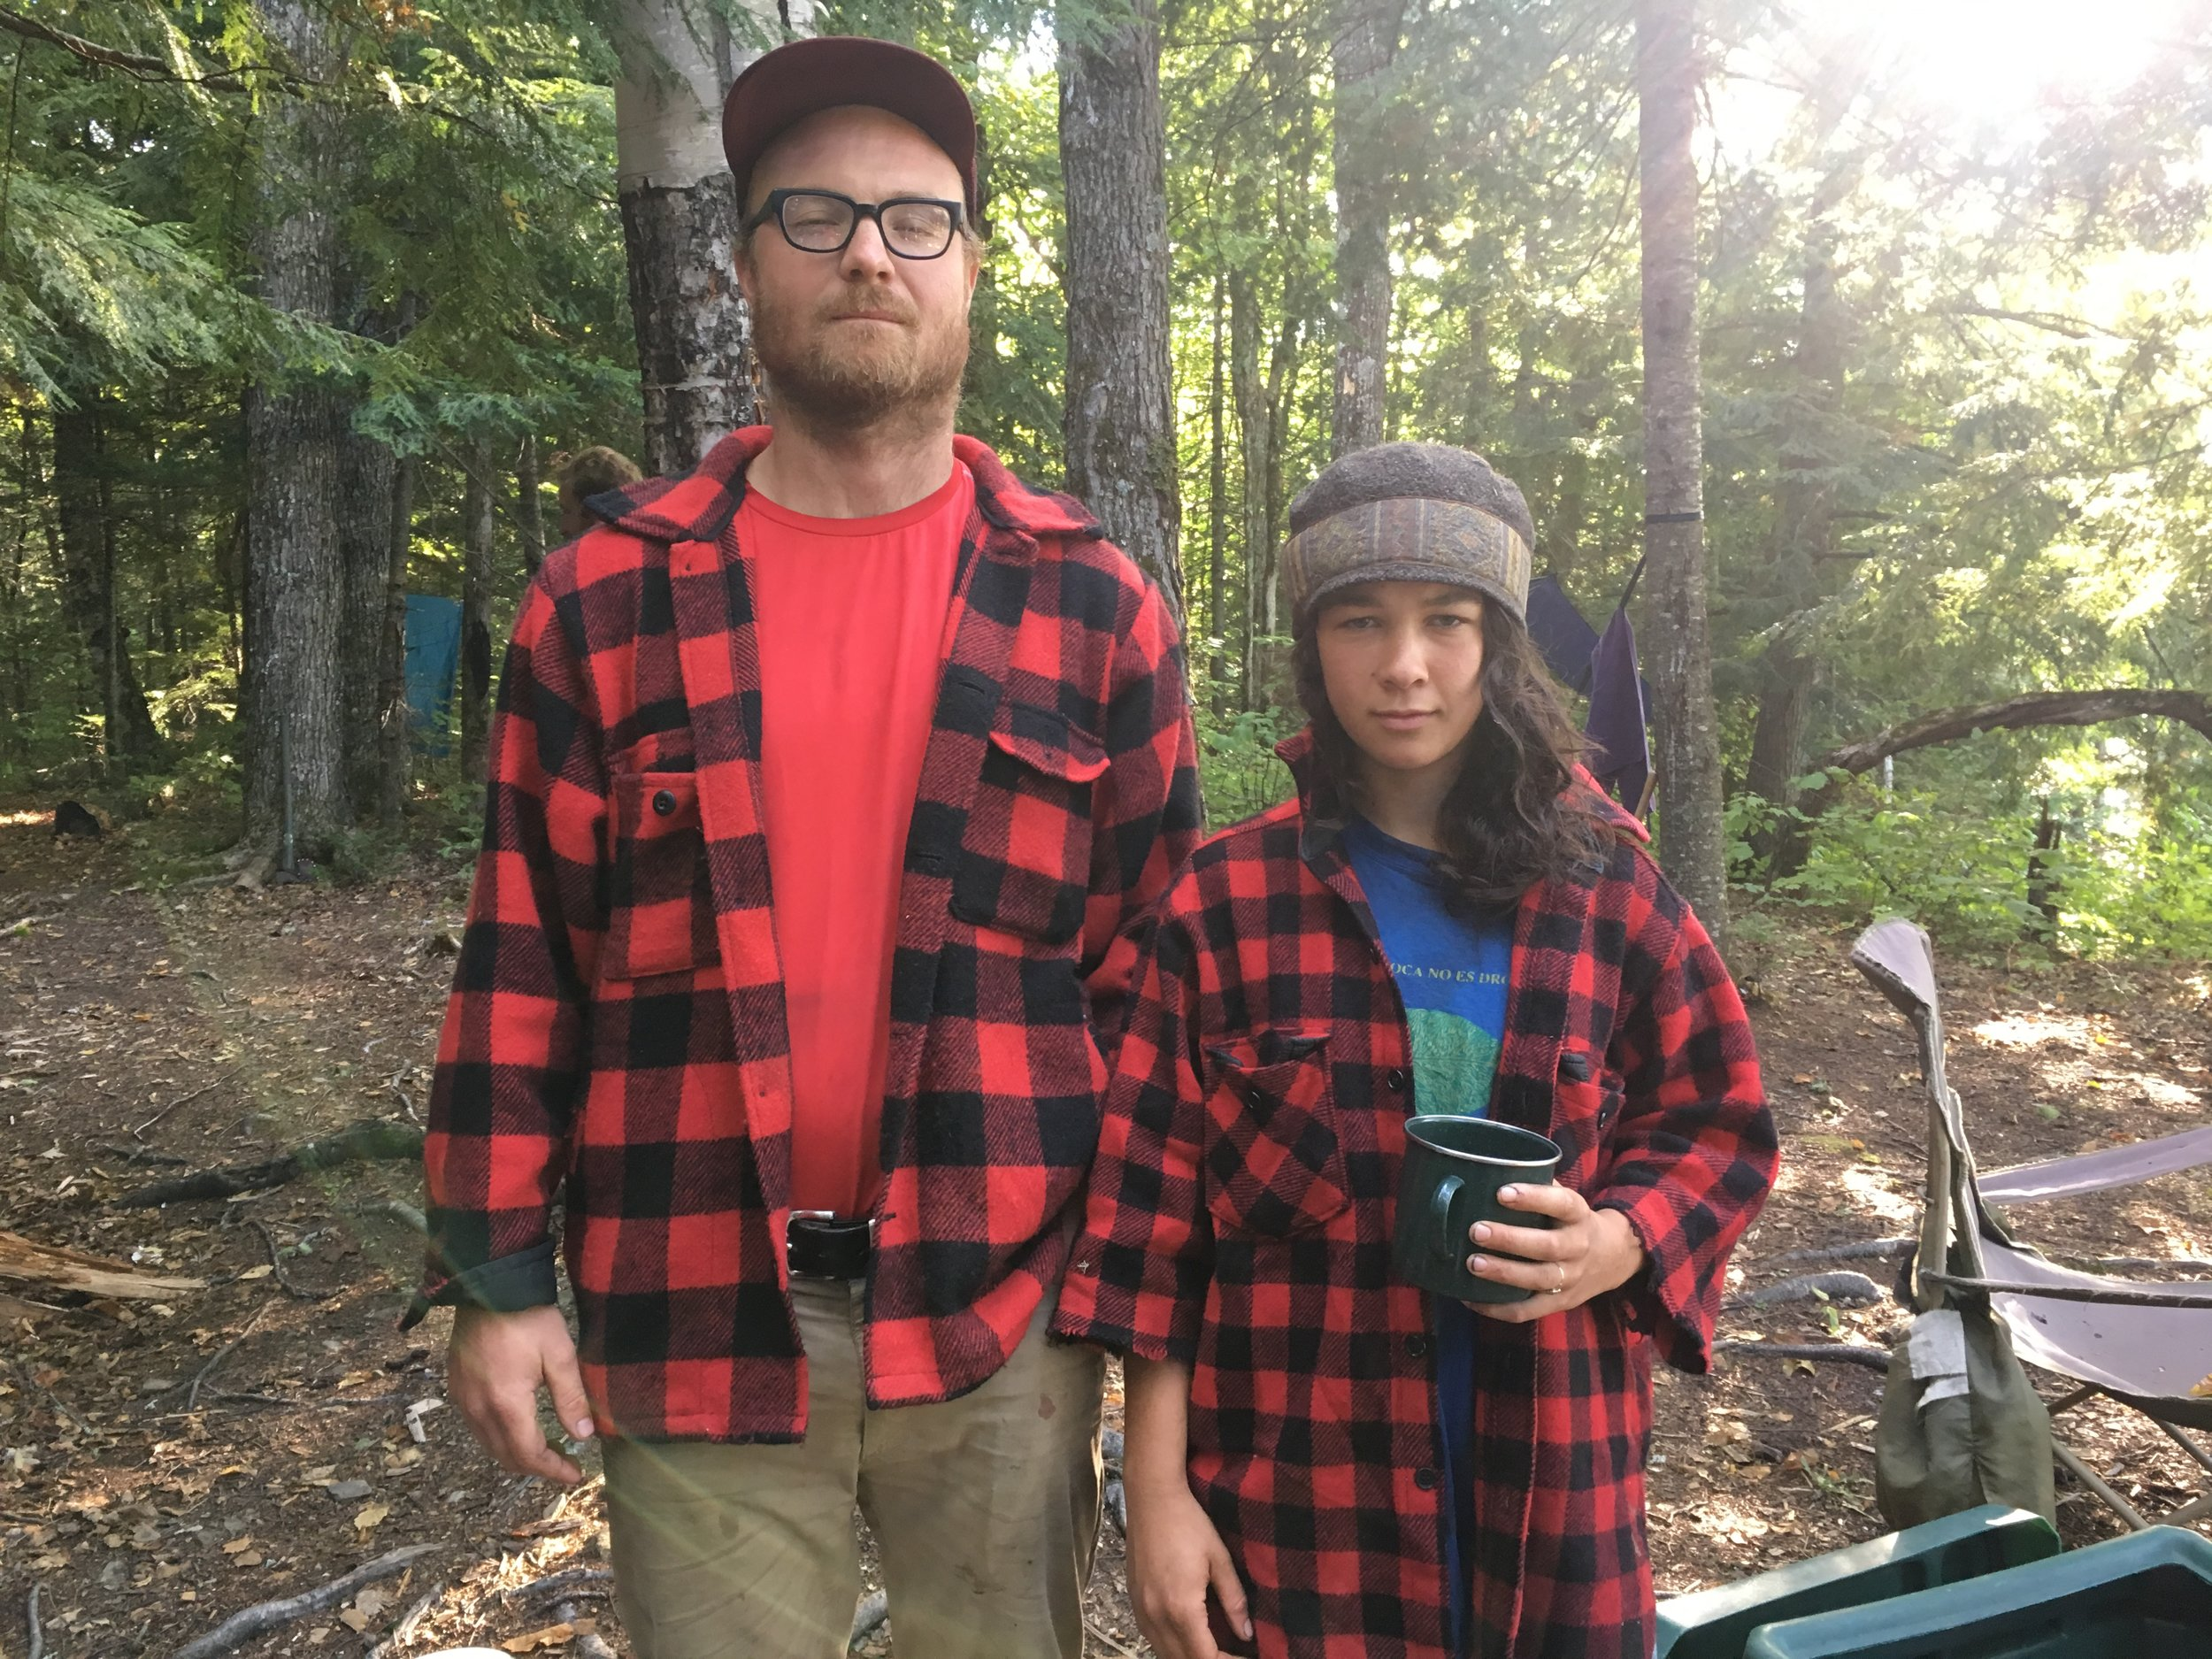 Colin and student Molly in matching buffalo plaid.